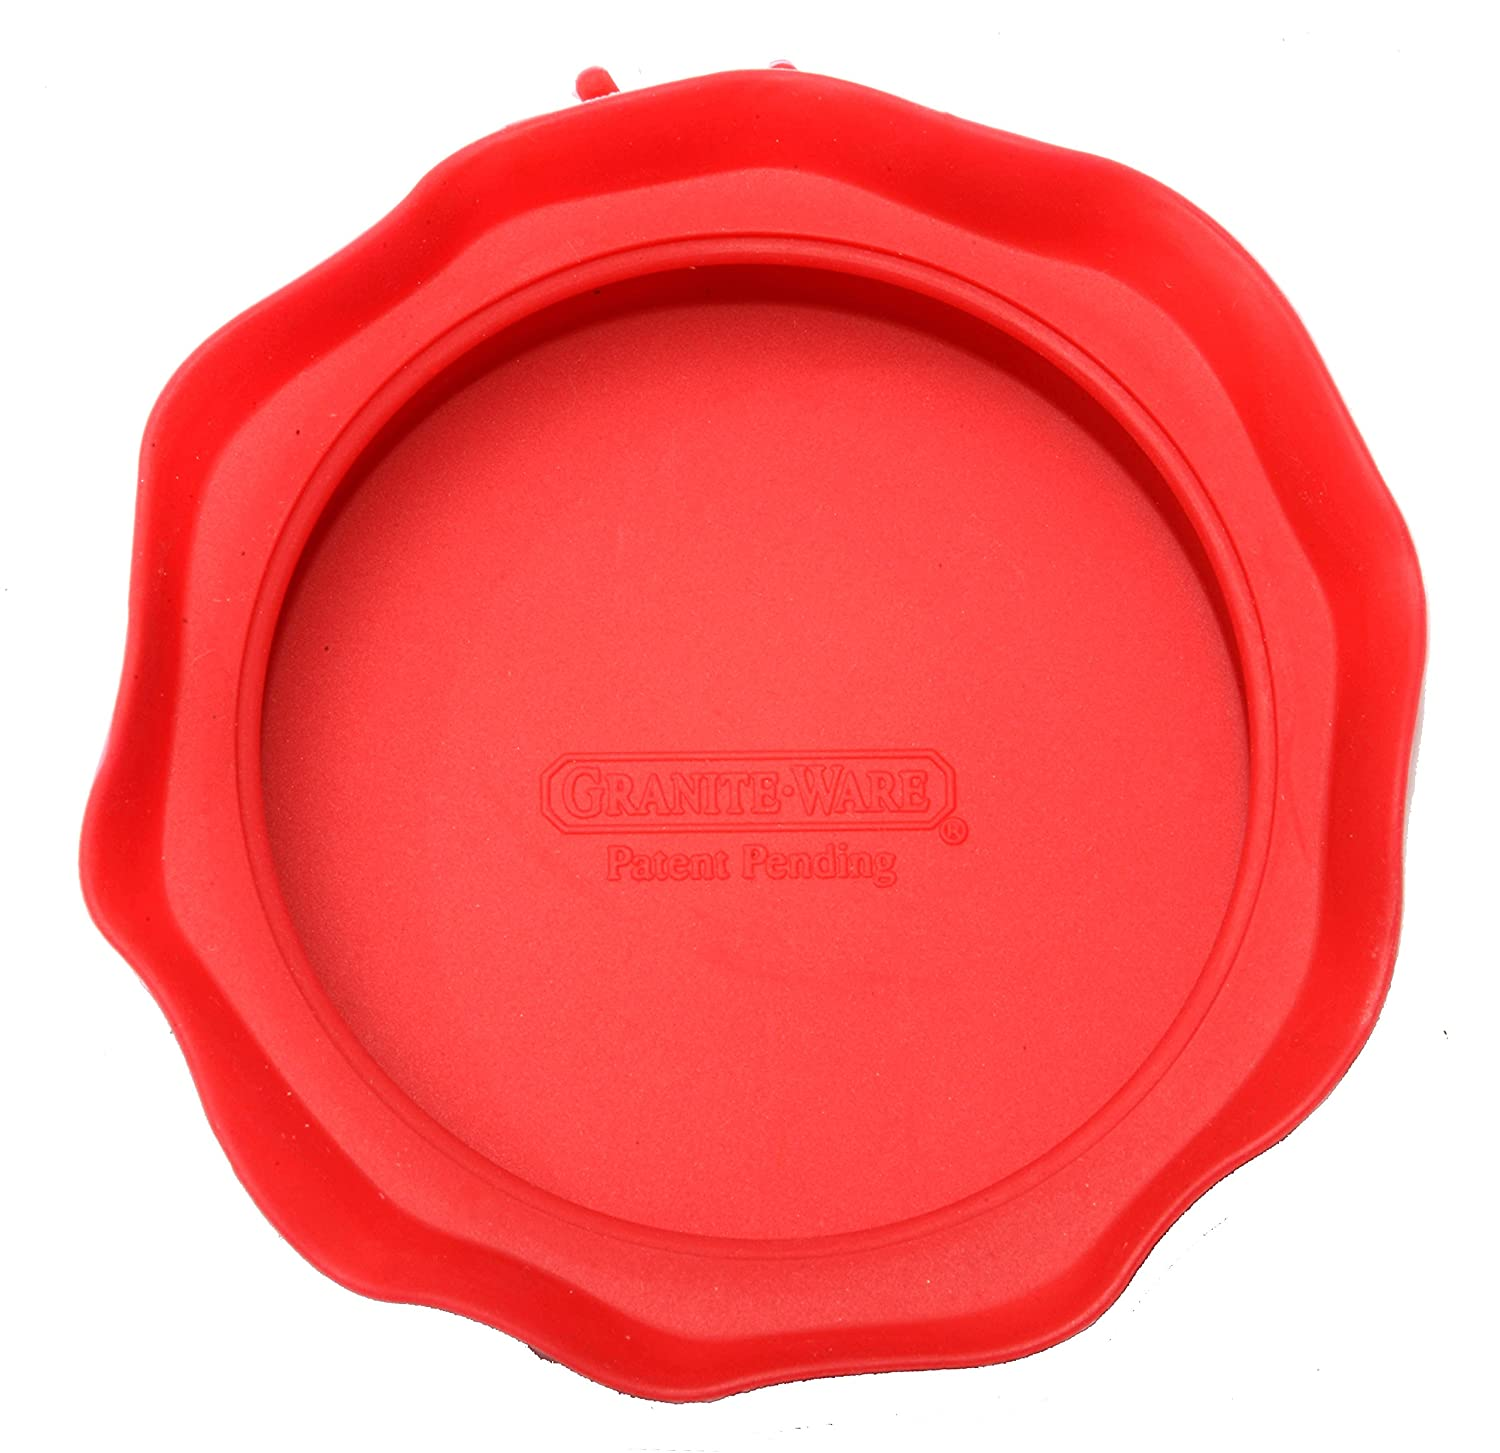 Set of 4 by Granite Ware Red Granite Ware F0723-4 Silicone Jar Toppers